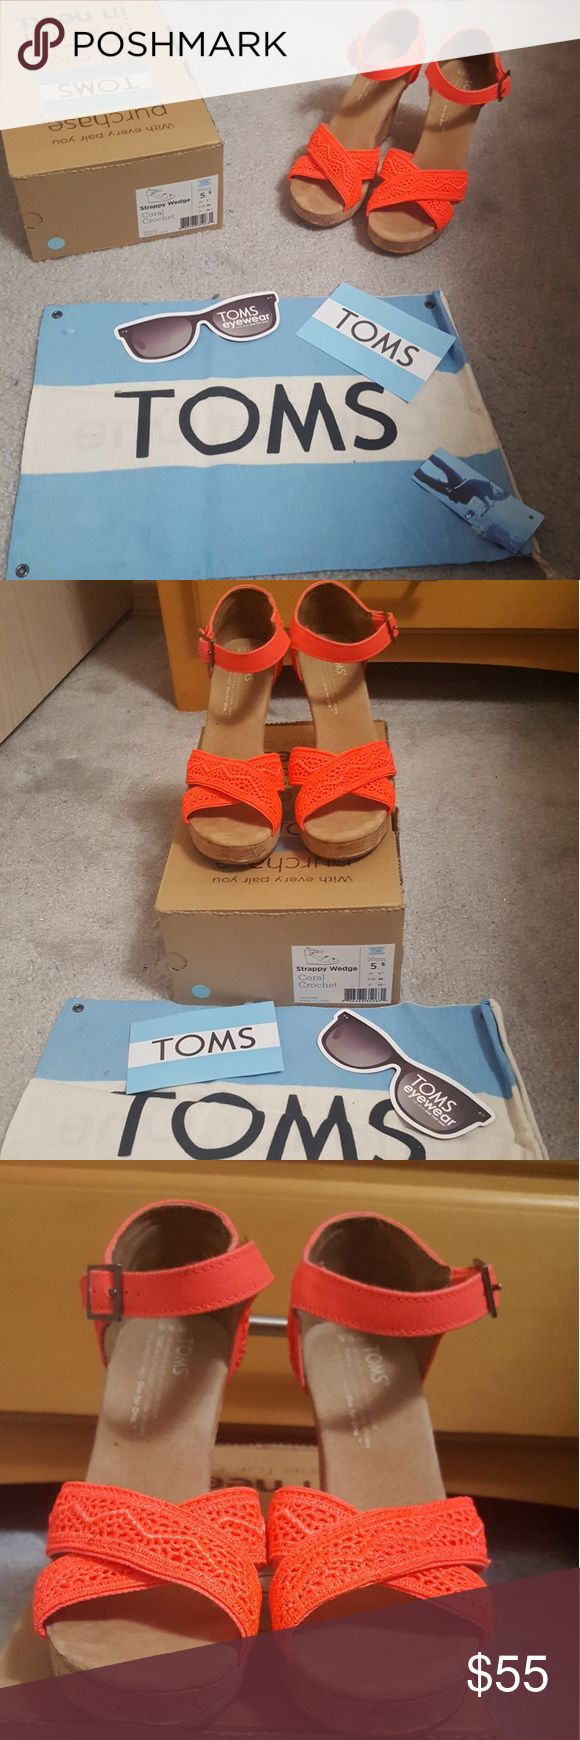 NIB Womens Tom's Strappy Crochet Wedges NEW IN BOX. SIZE 5 1/2.  Style: Strappy Wedge Color: Coral (neon like color) Cork platform/heel. Heel: 3 1/2 inches 1 inch front platform   Embroidered Tom's flag logo in back of shoe. Beautiful crochet design. Only tried on indoors, didnt work our for me. Comes with original Tom's flag shoe pouch, and inserts like sticker and eyewear flyer.  My loss will hopefully be your gain!  NO TRADES. OFFERS WELCOMED. BUNDLE AND SAVE ON SHIPPING!  PLEASE ASK ANY…